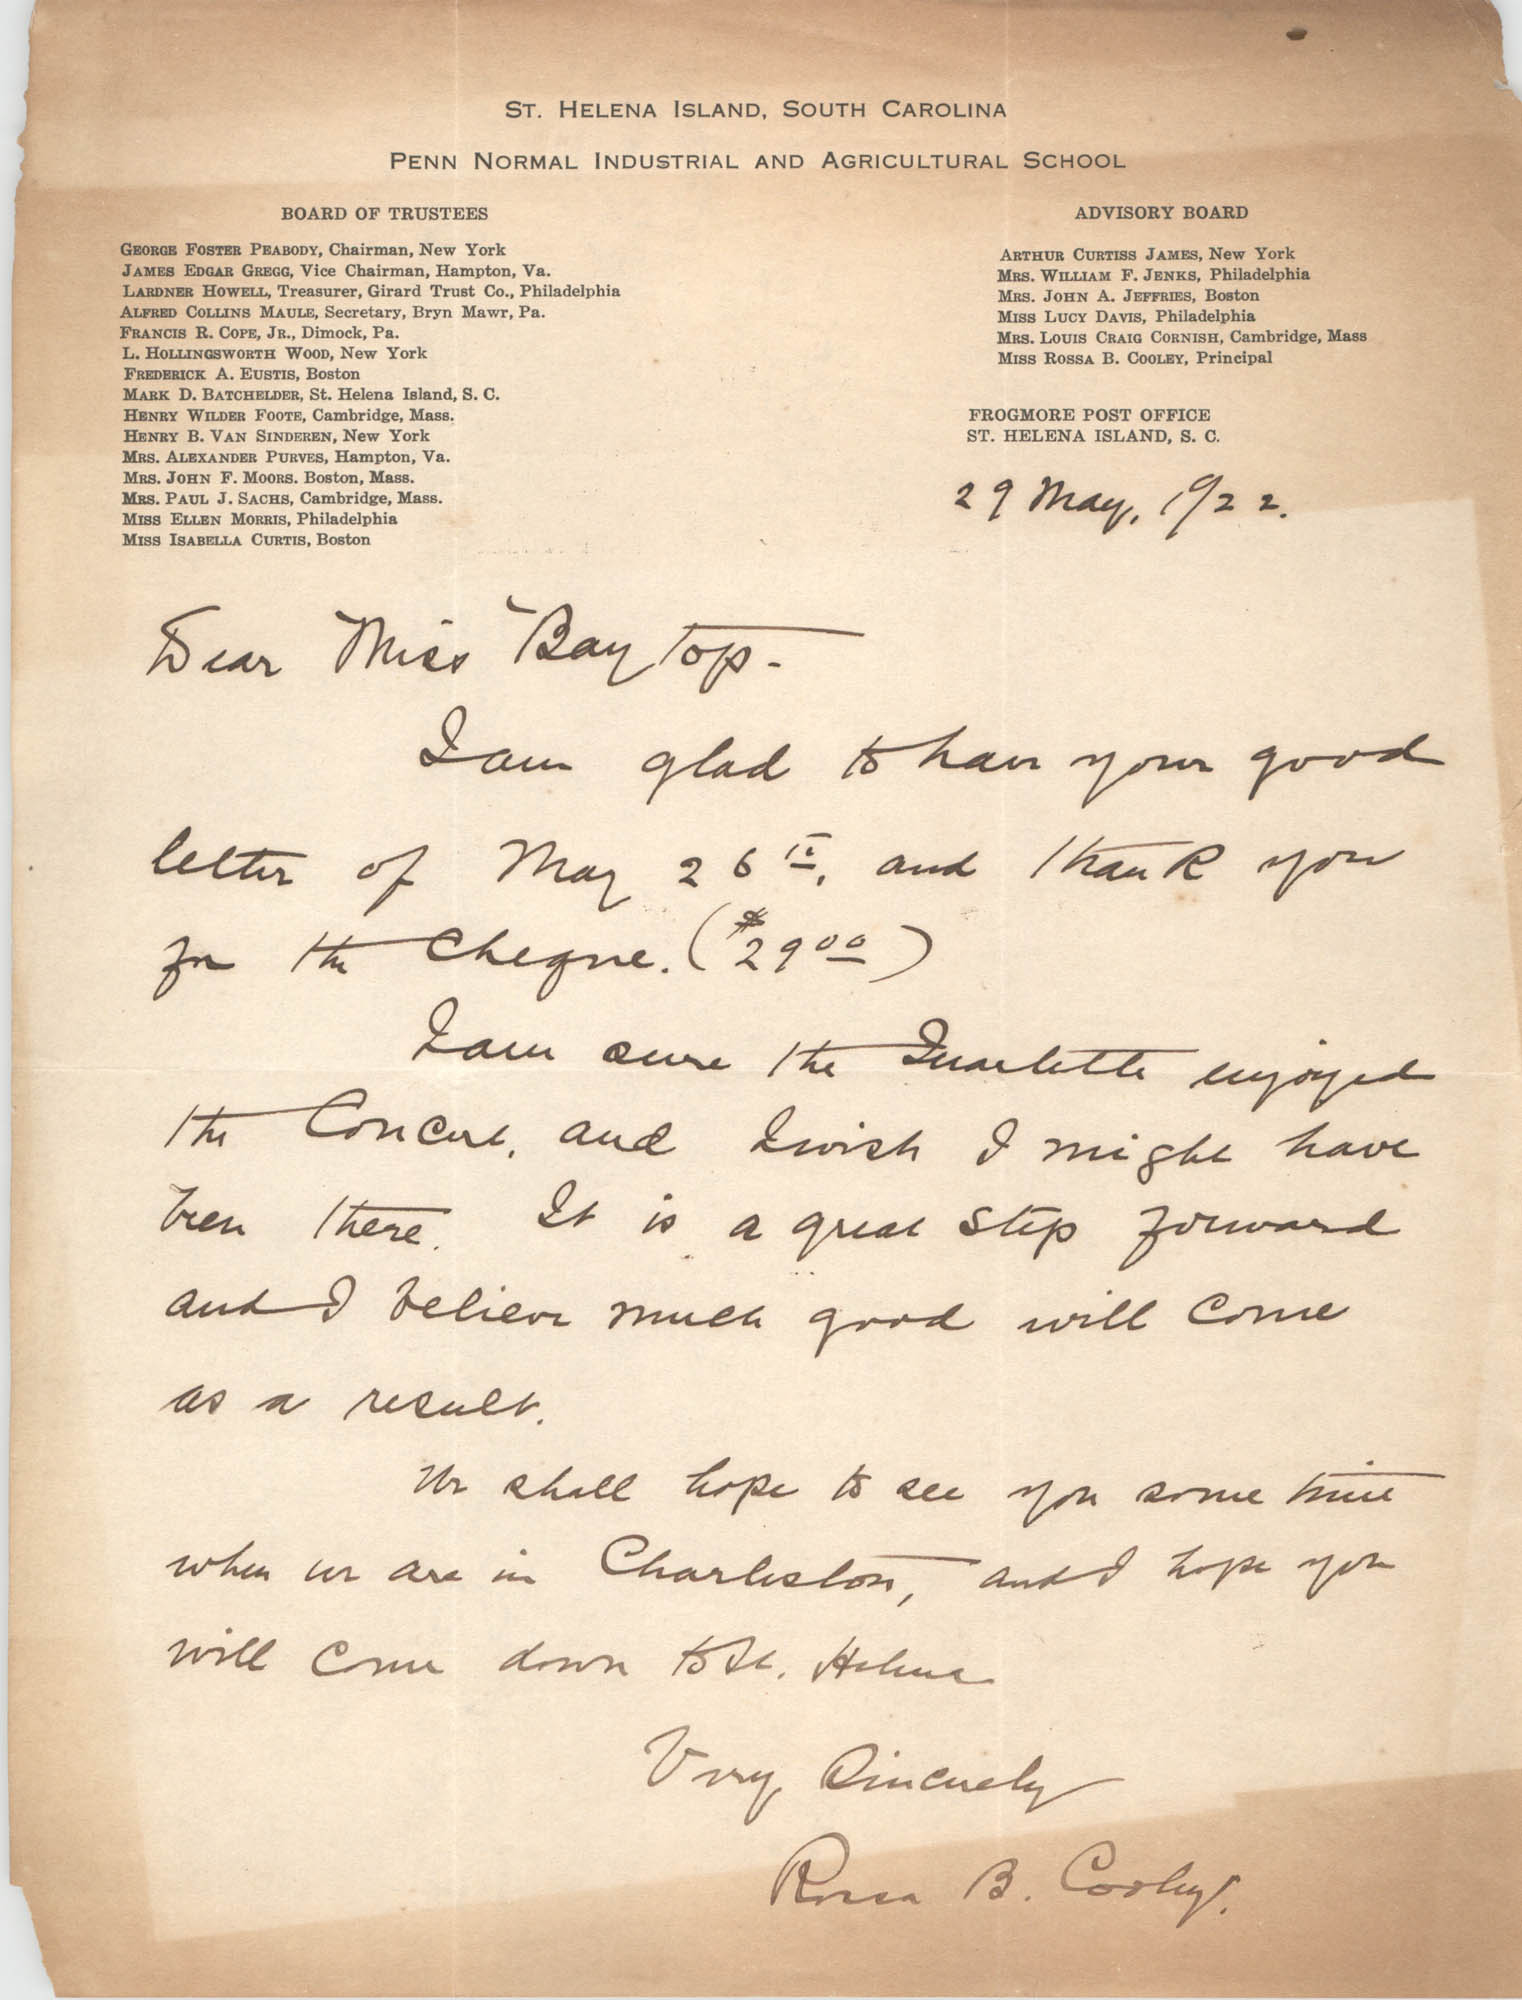 Letter from Rossa B. Cooley to Ada C. Baytop, May 29, 1922